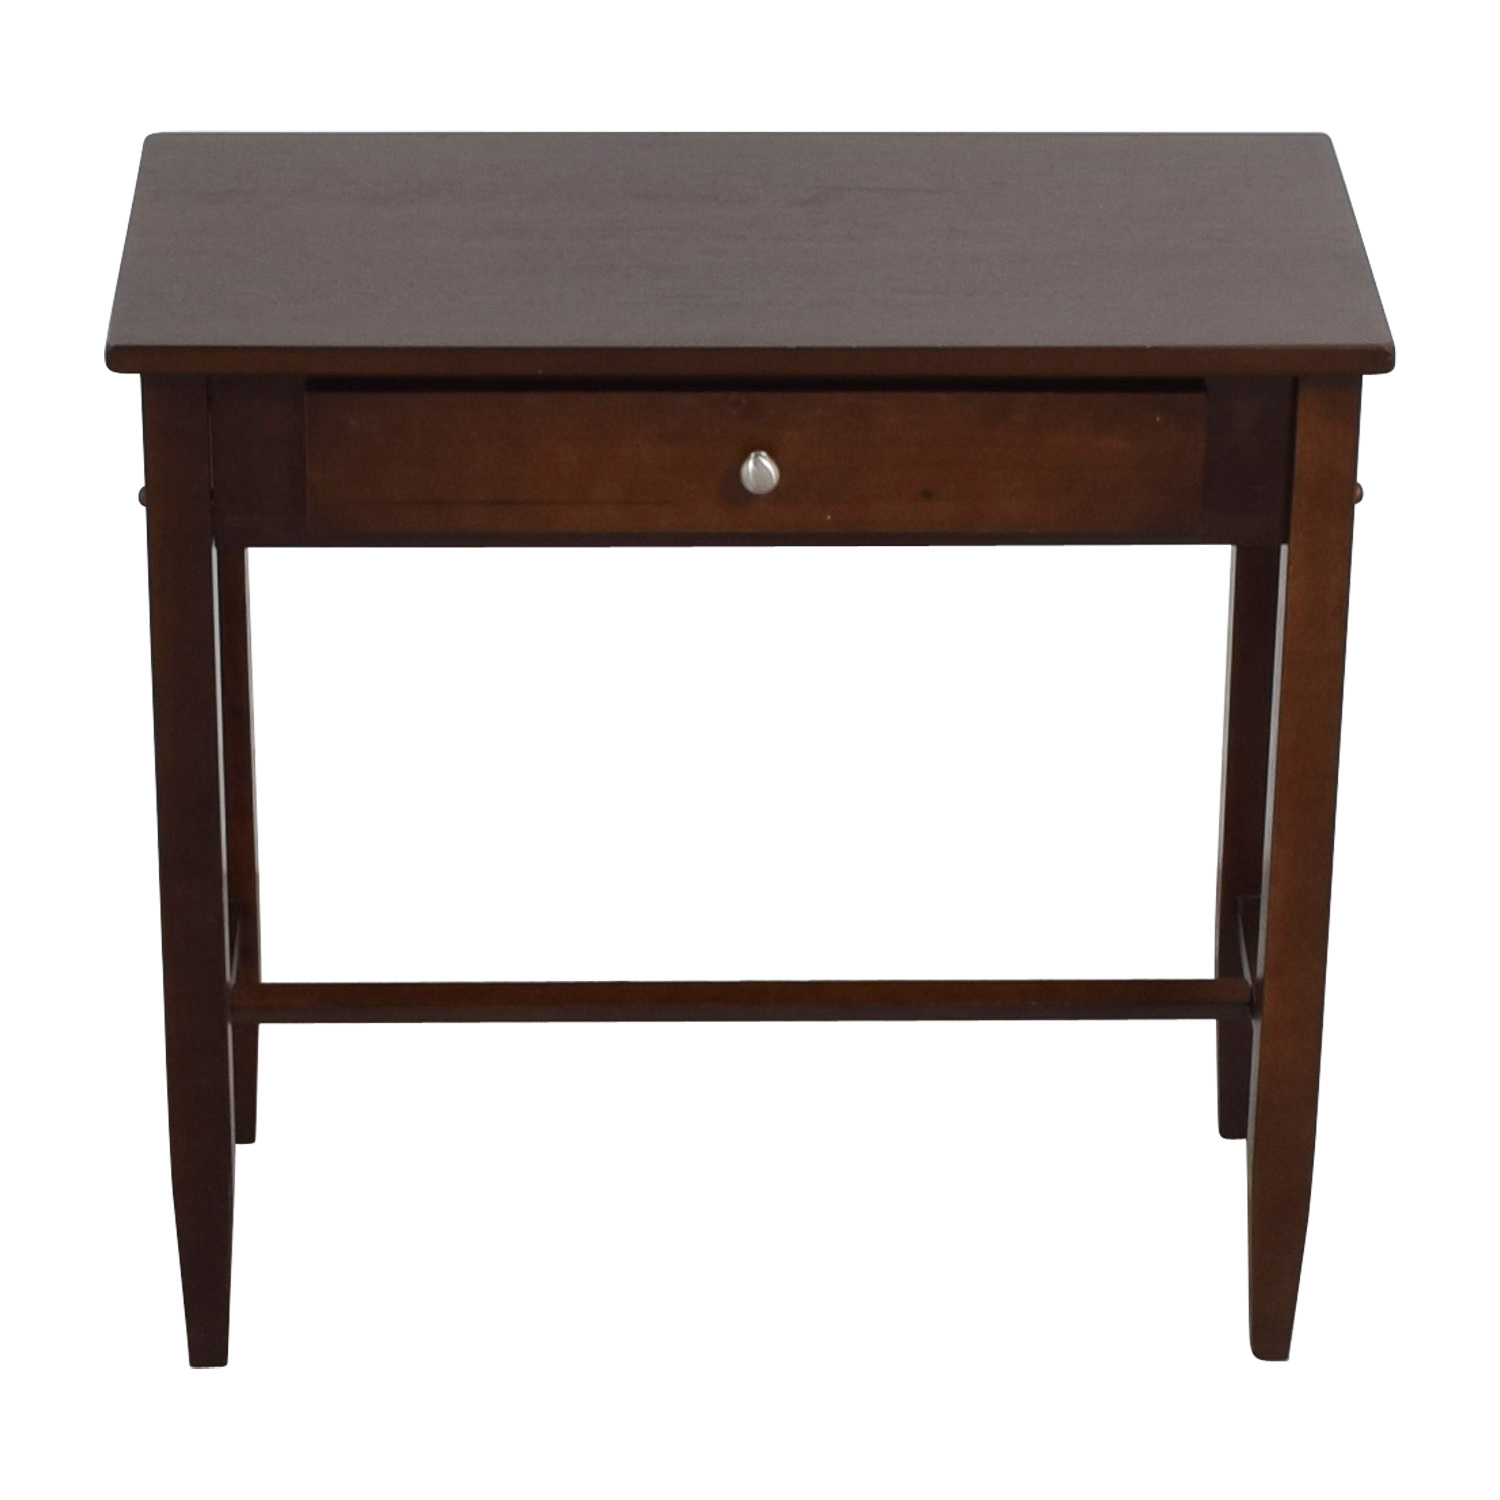 Single Drawer Console Table second hand